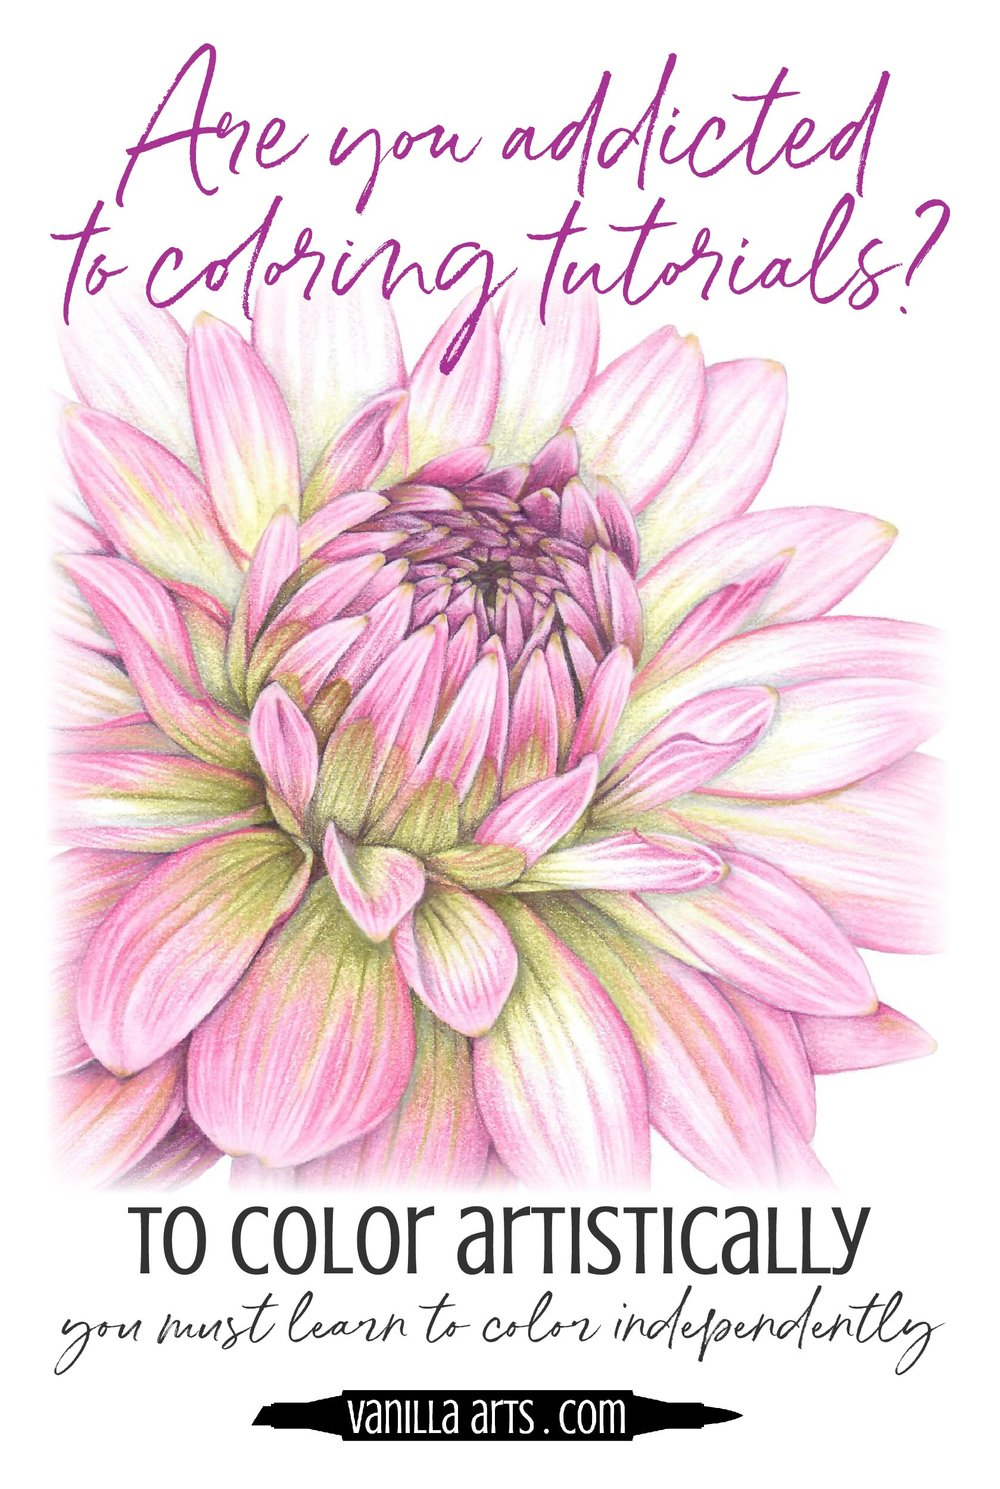 """Do you research """"how to color a ___"""" before every Copic marker project? Until you learn to color independently without tutorials, you'll never get the artistry you want.